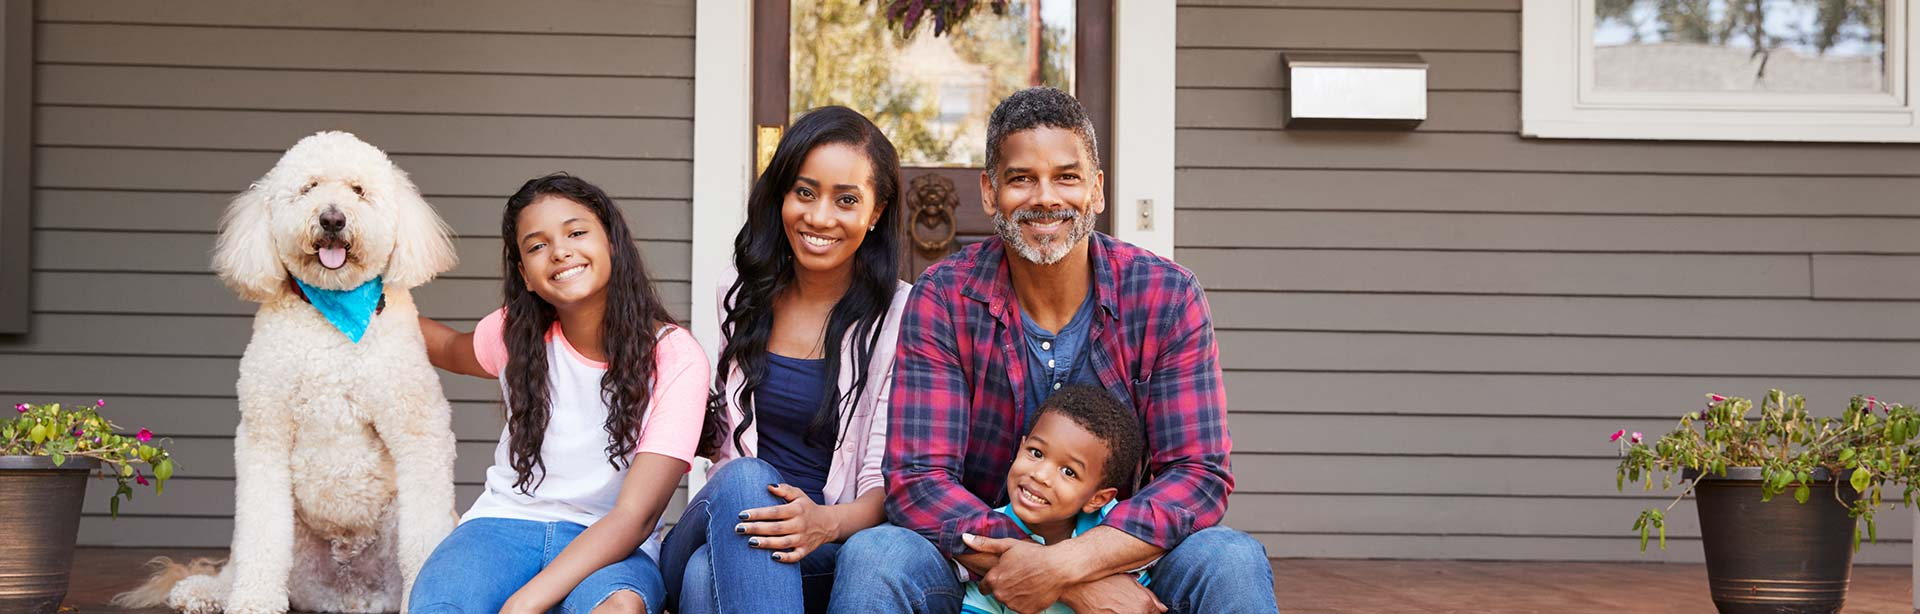 Happy Afro-American family of four with their dog sitting on the porch steps.